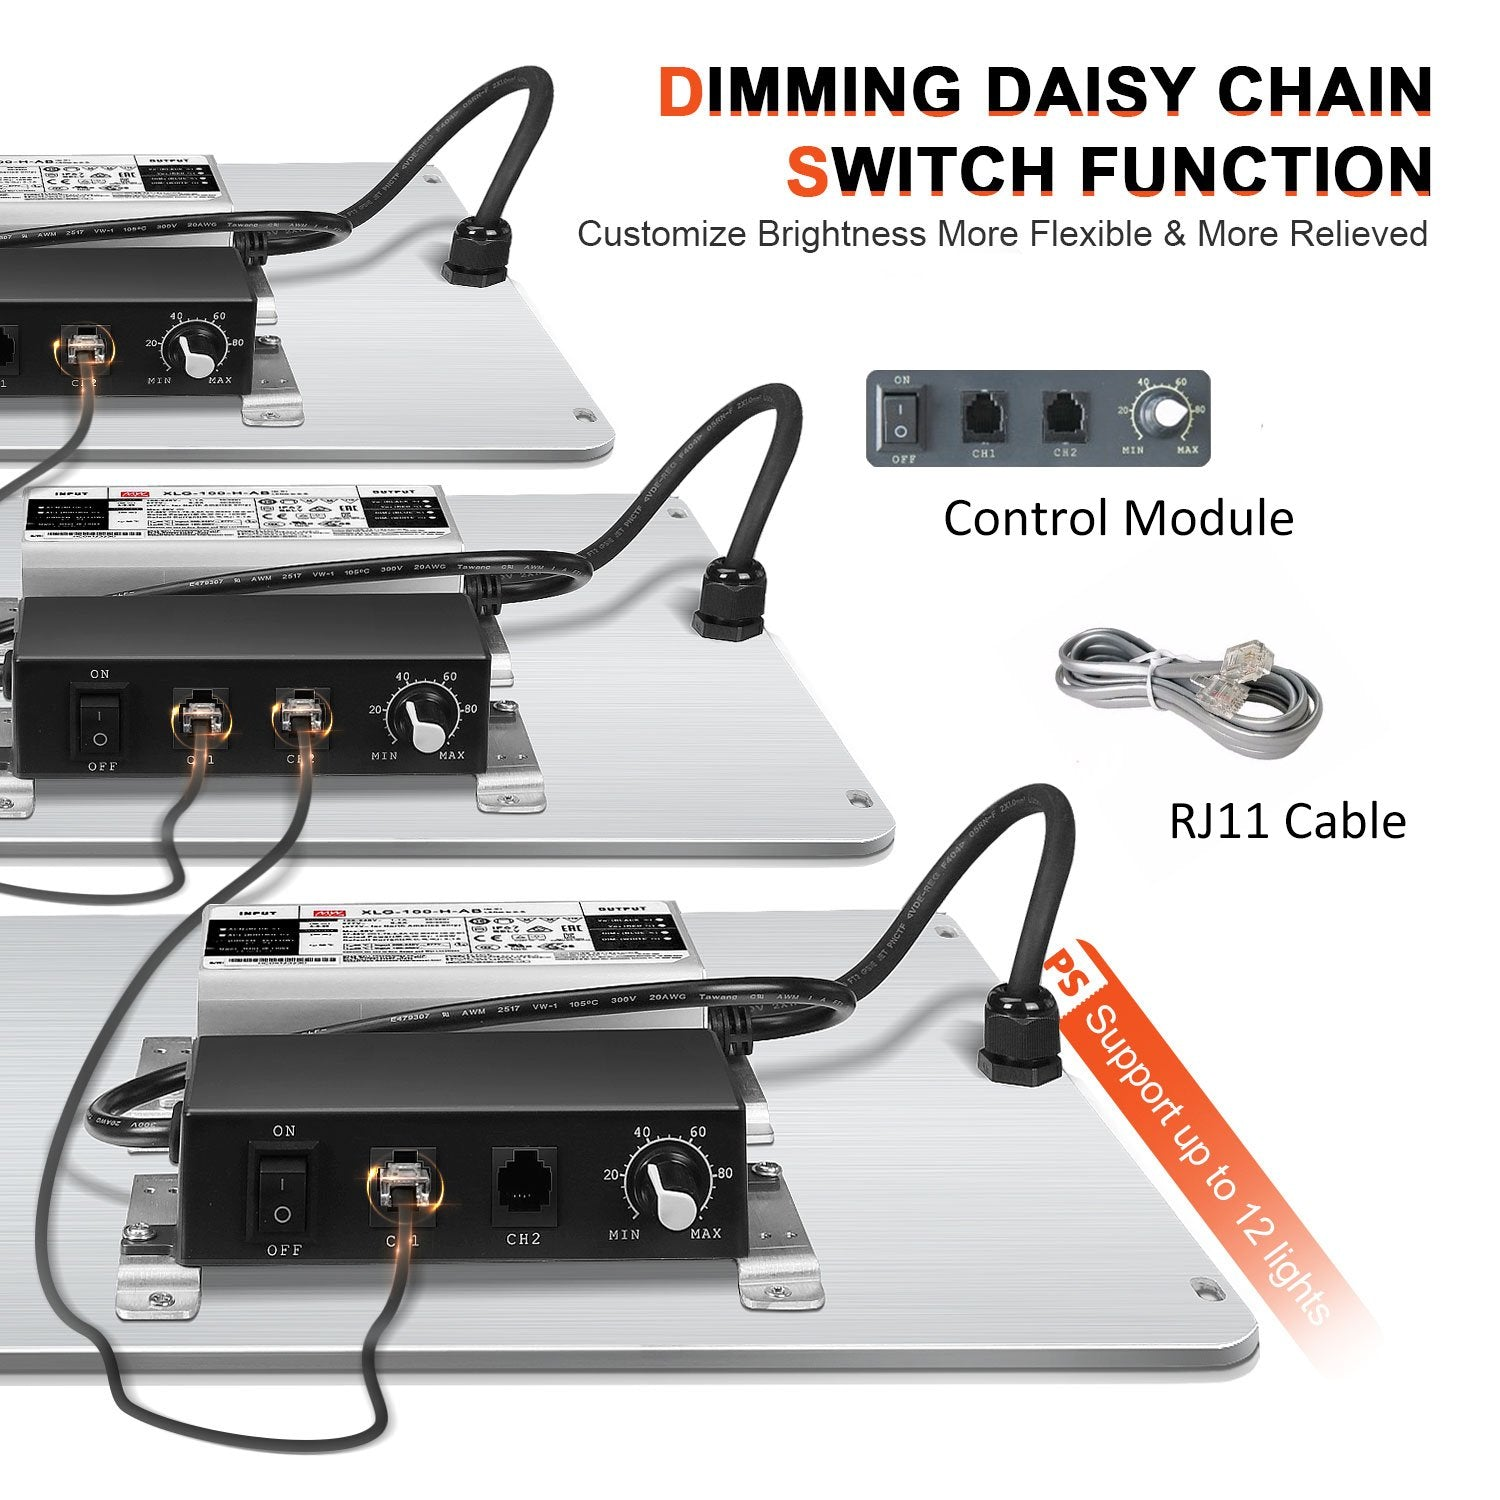 Detail of the Daisy Chain Switch Function spider farmer Spider Farmer sf4000 SF4000 sf2000 SF2000 & SF1000 sf1000  spiderfarmer LED Grow Lights UK Official Partner Supplier/Retailer